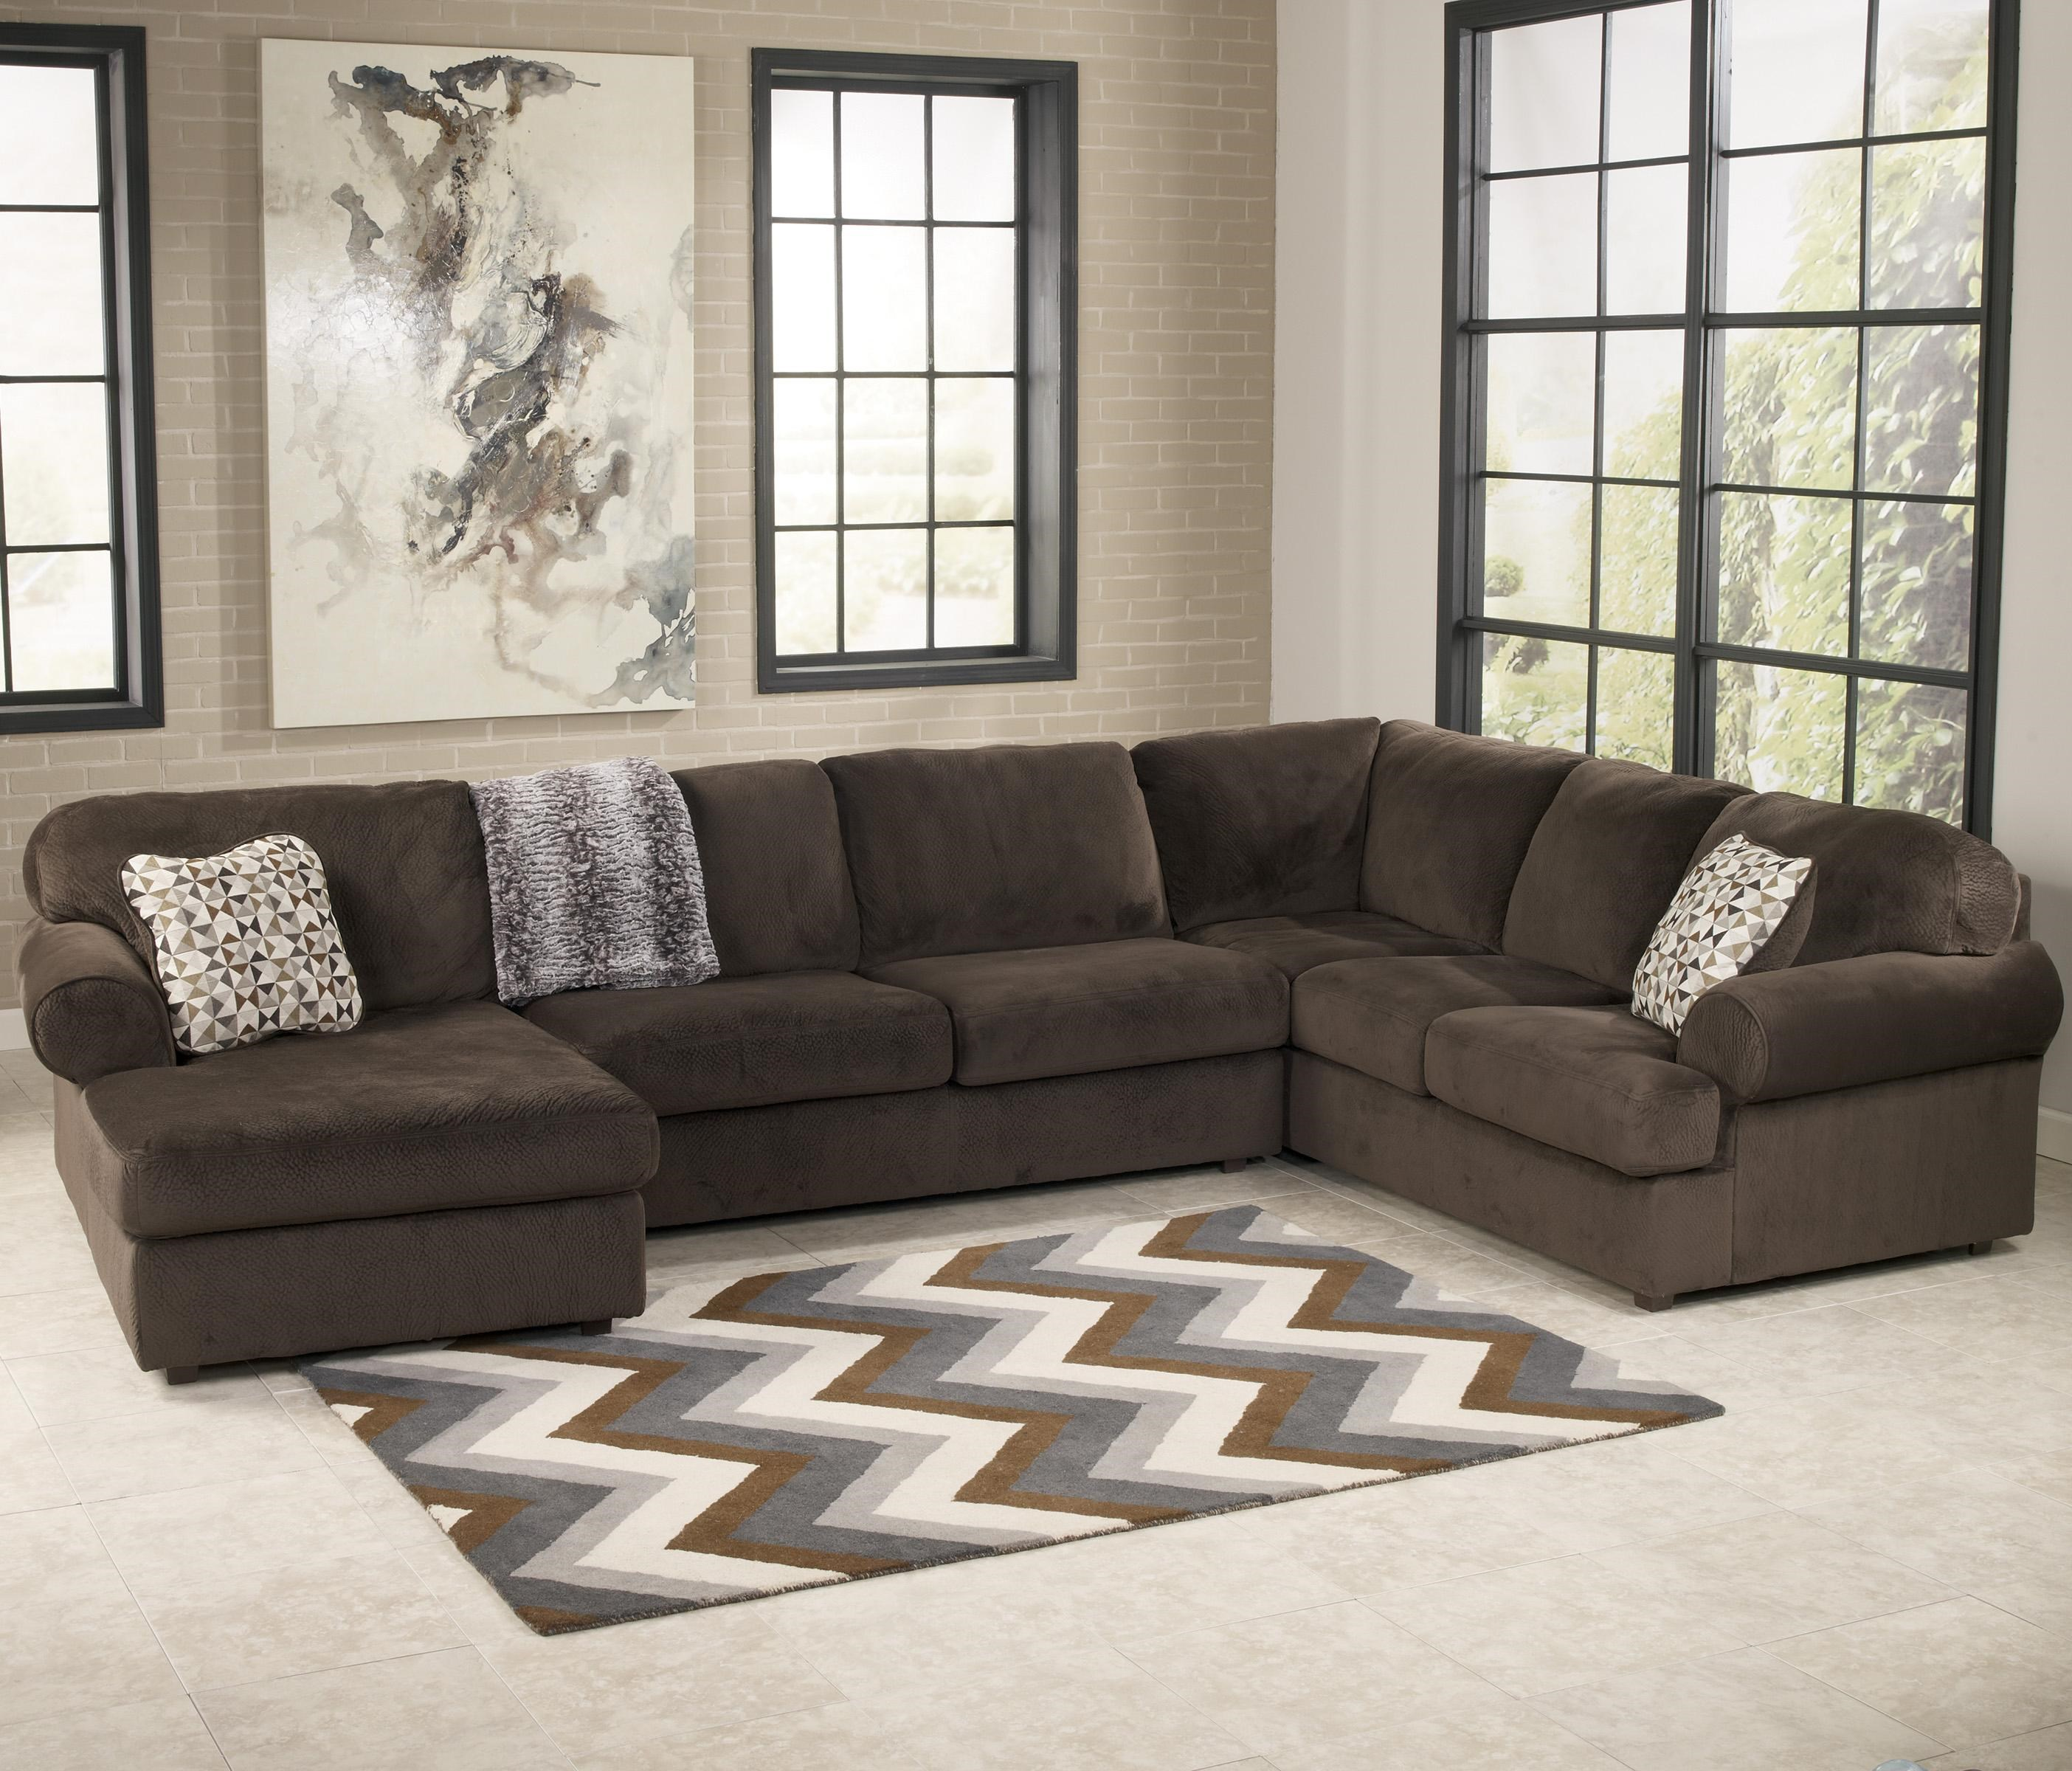 Ashley Signature Design Jessa Place - Chocolate Casual Sectional Sofa with Left Chaise - Dunk u0026 Bright Furniture - Sofa Sectional : ashley sectional couches - Sectionals, Sofas & Couches